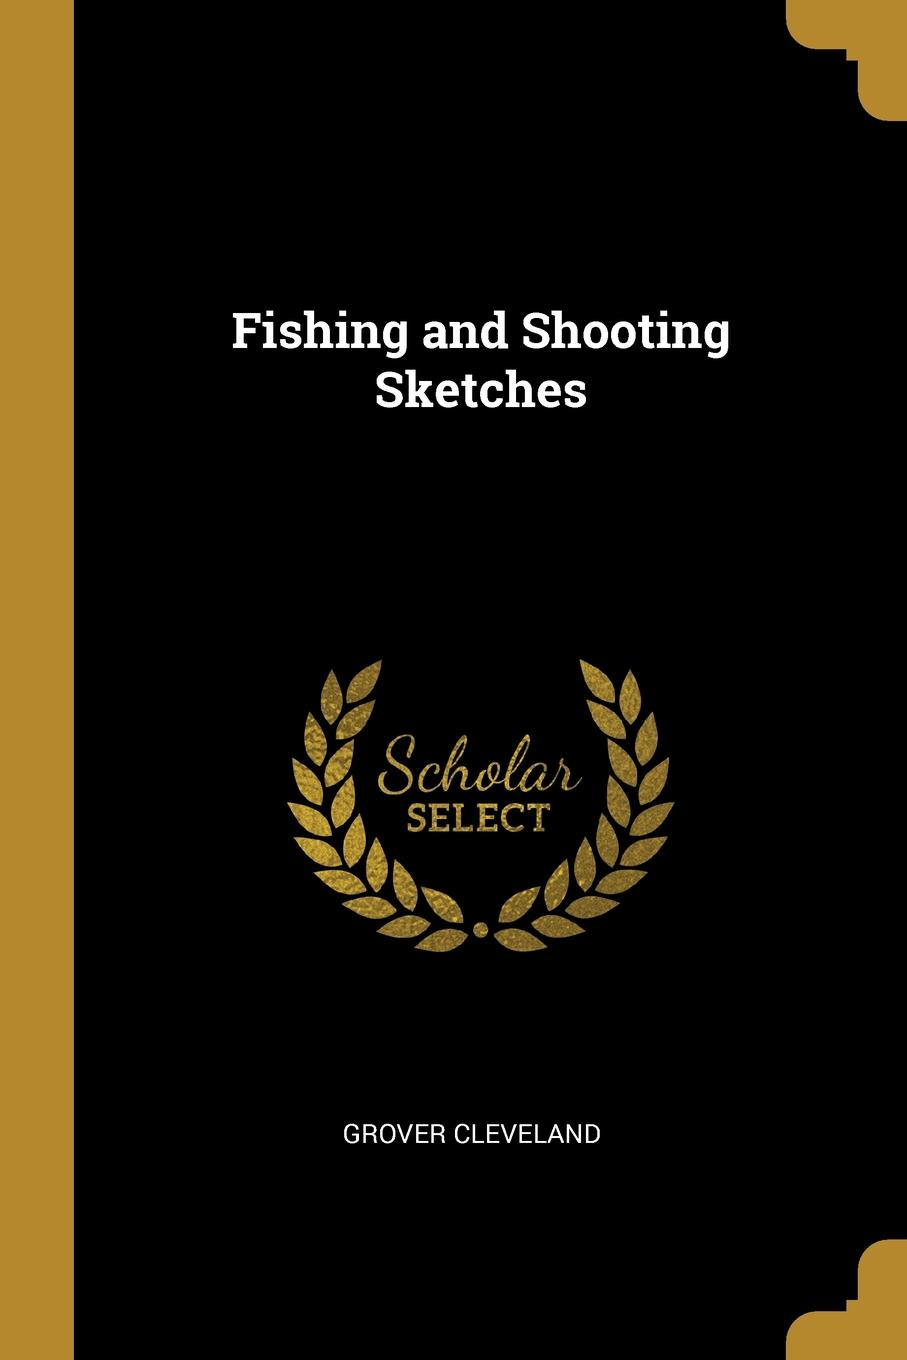 Grover Cleveland. Fishing and Shooting Sketches